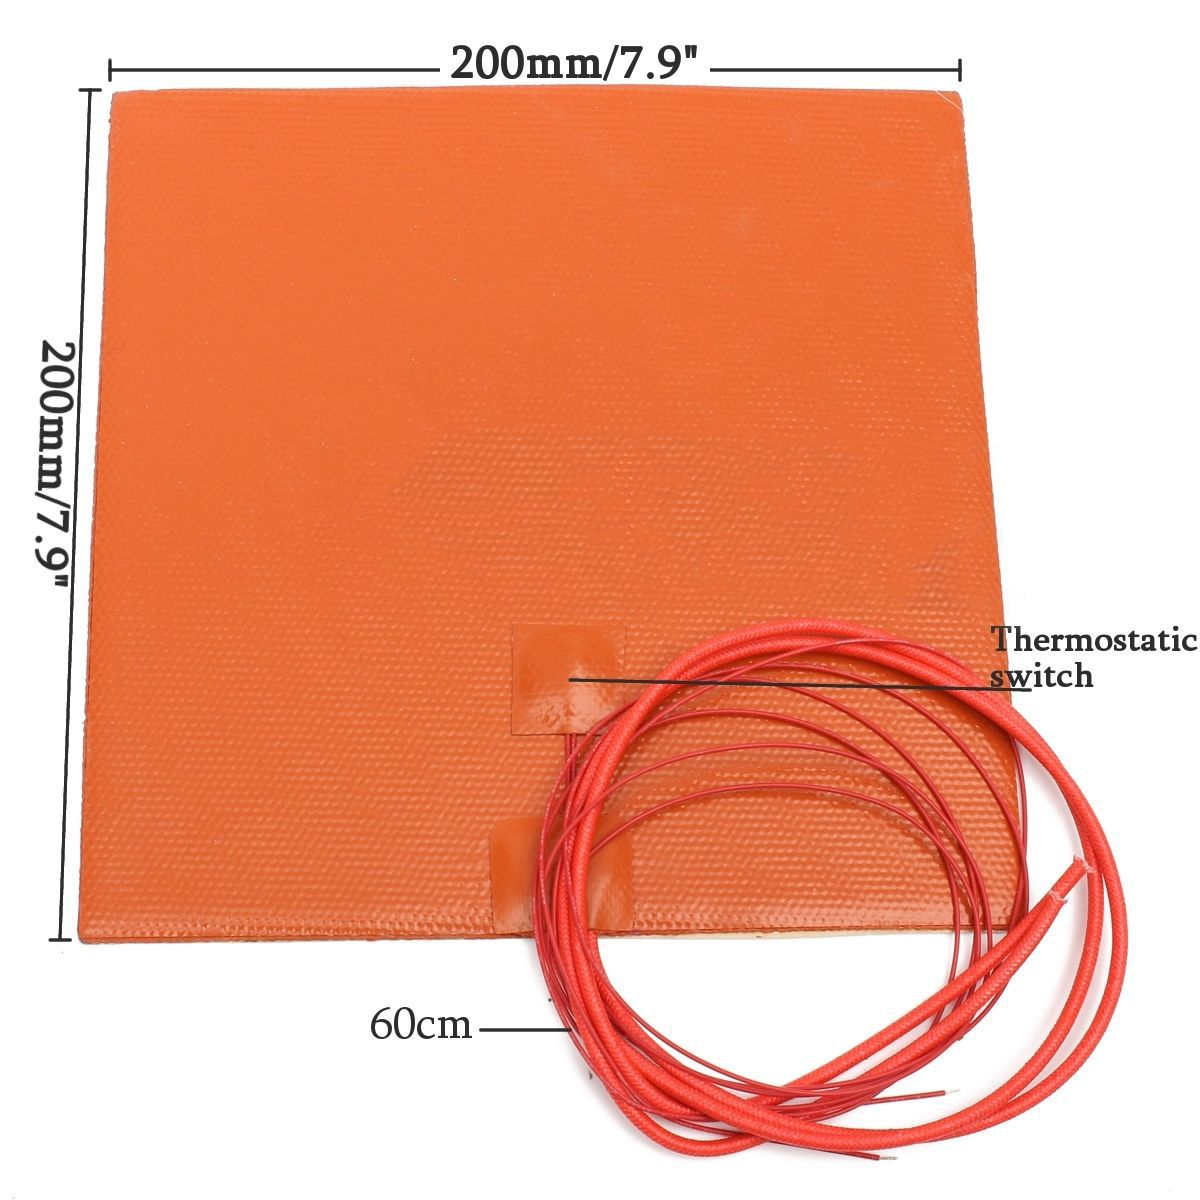 Fast Heating 200W 12V Silicone Heater Pad For 3D Printer Duplicating Machines Heated Bed Orange Heating Mat Repair Tools Mayitr